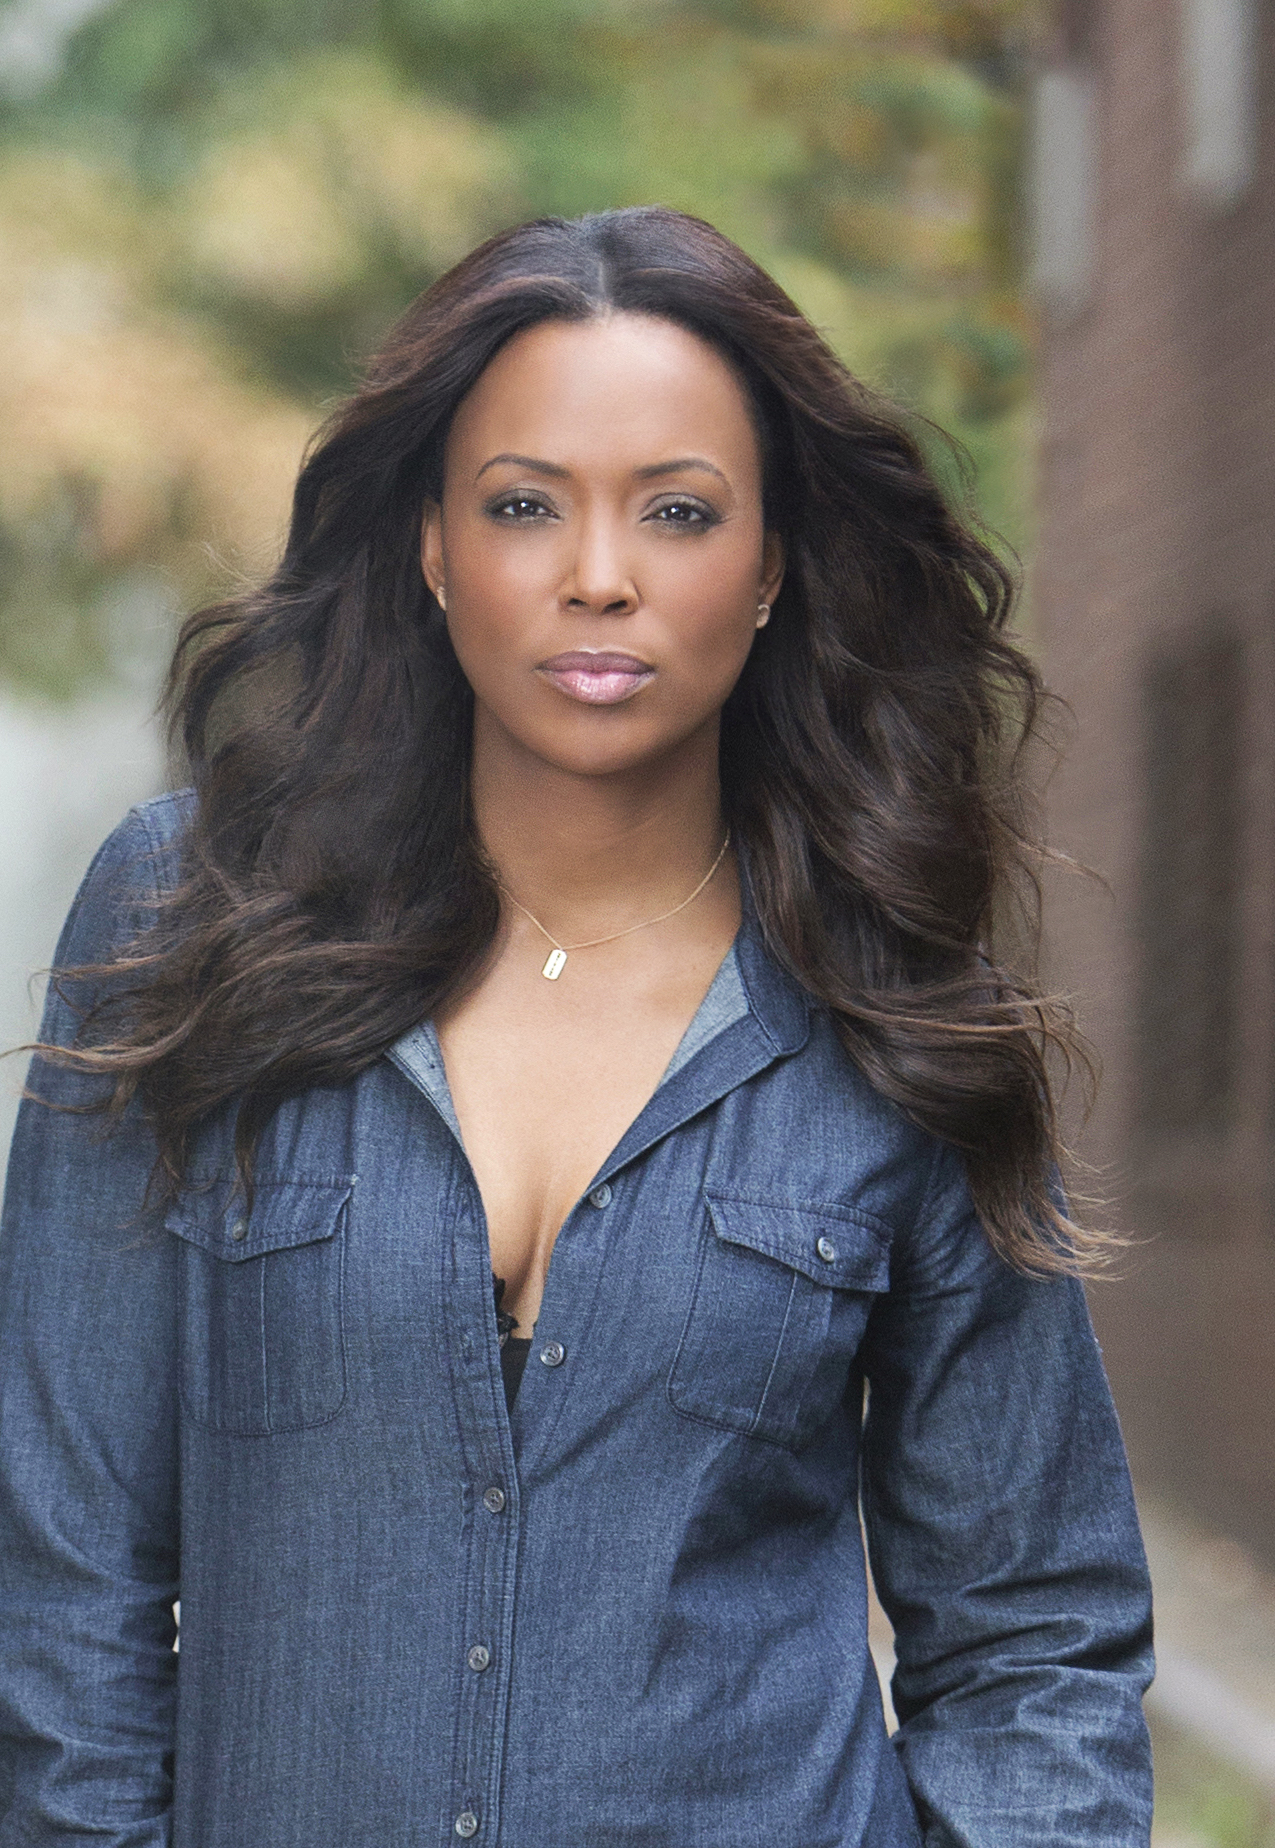 Aisha Tyler nude photos 2019